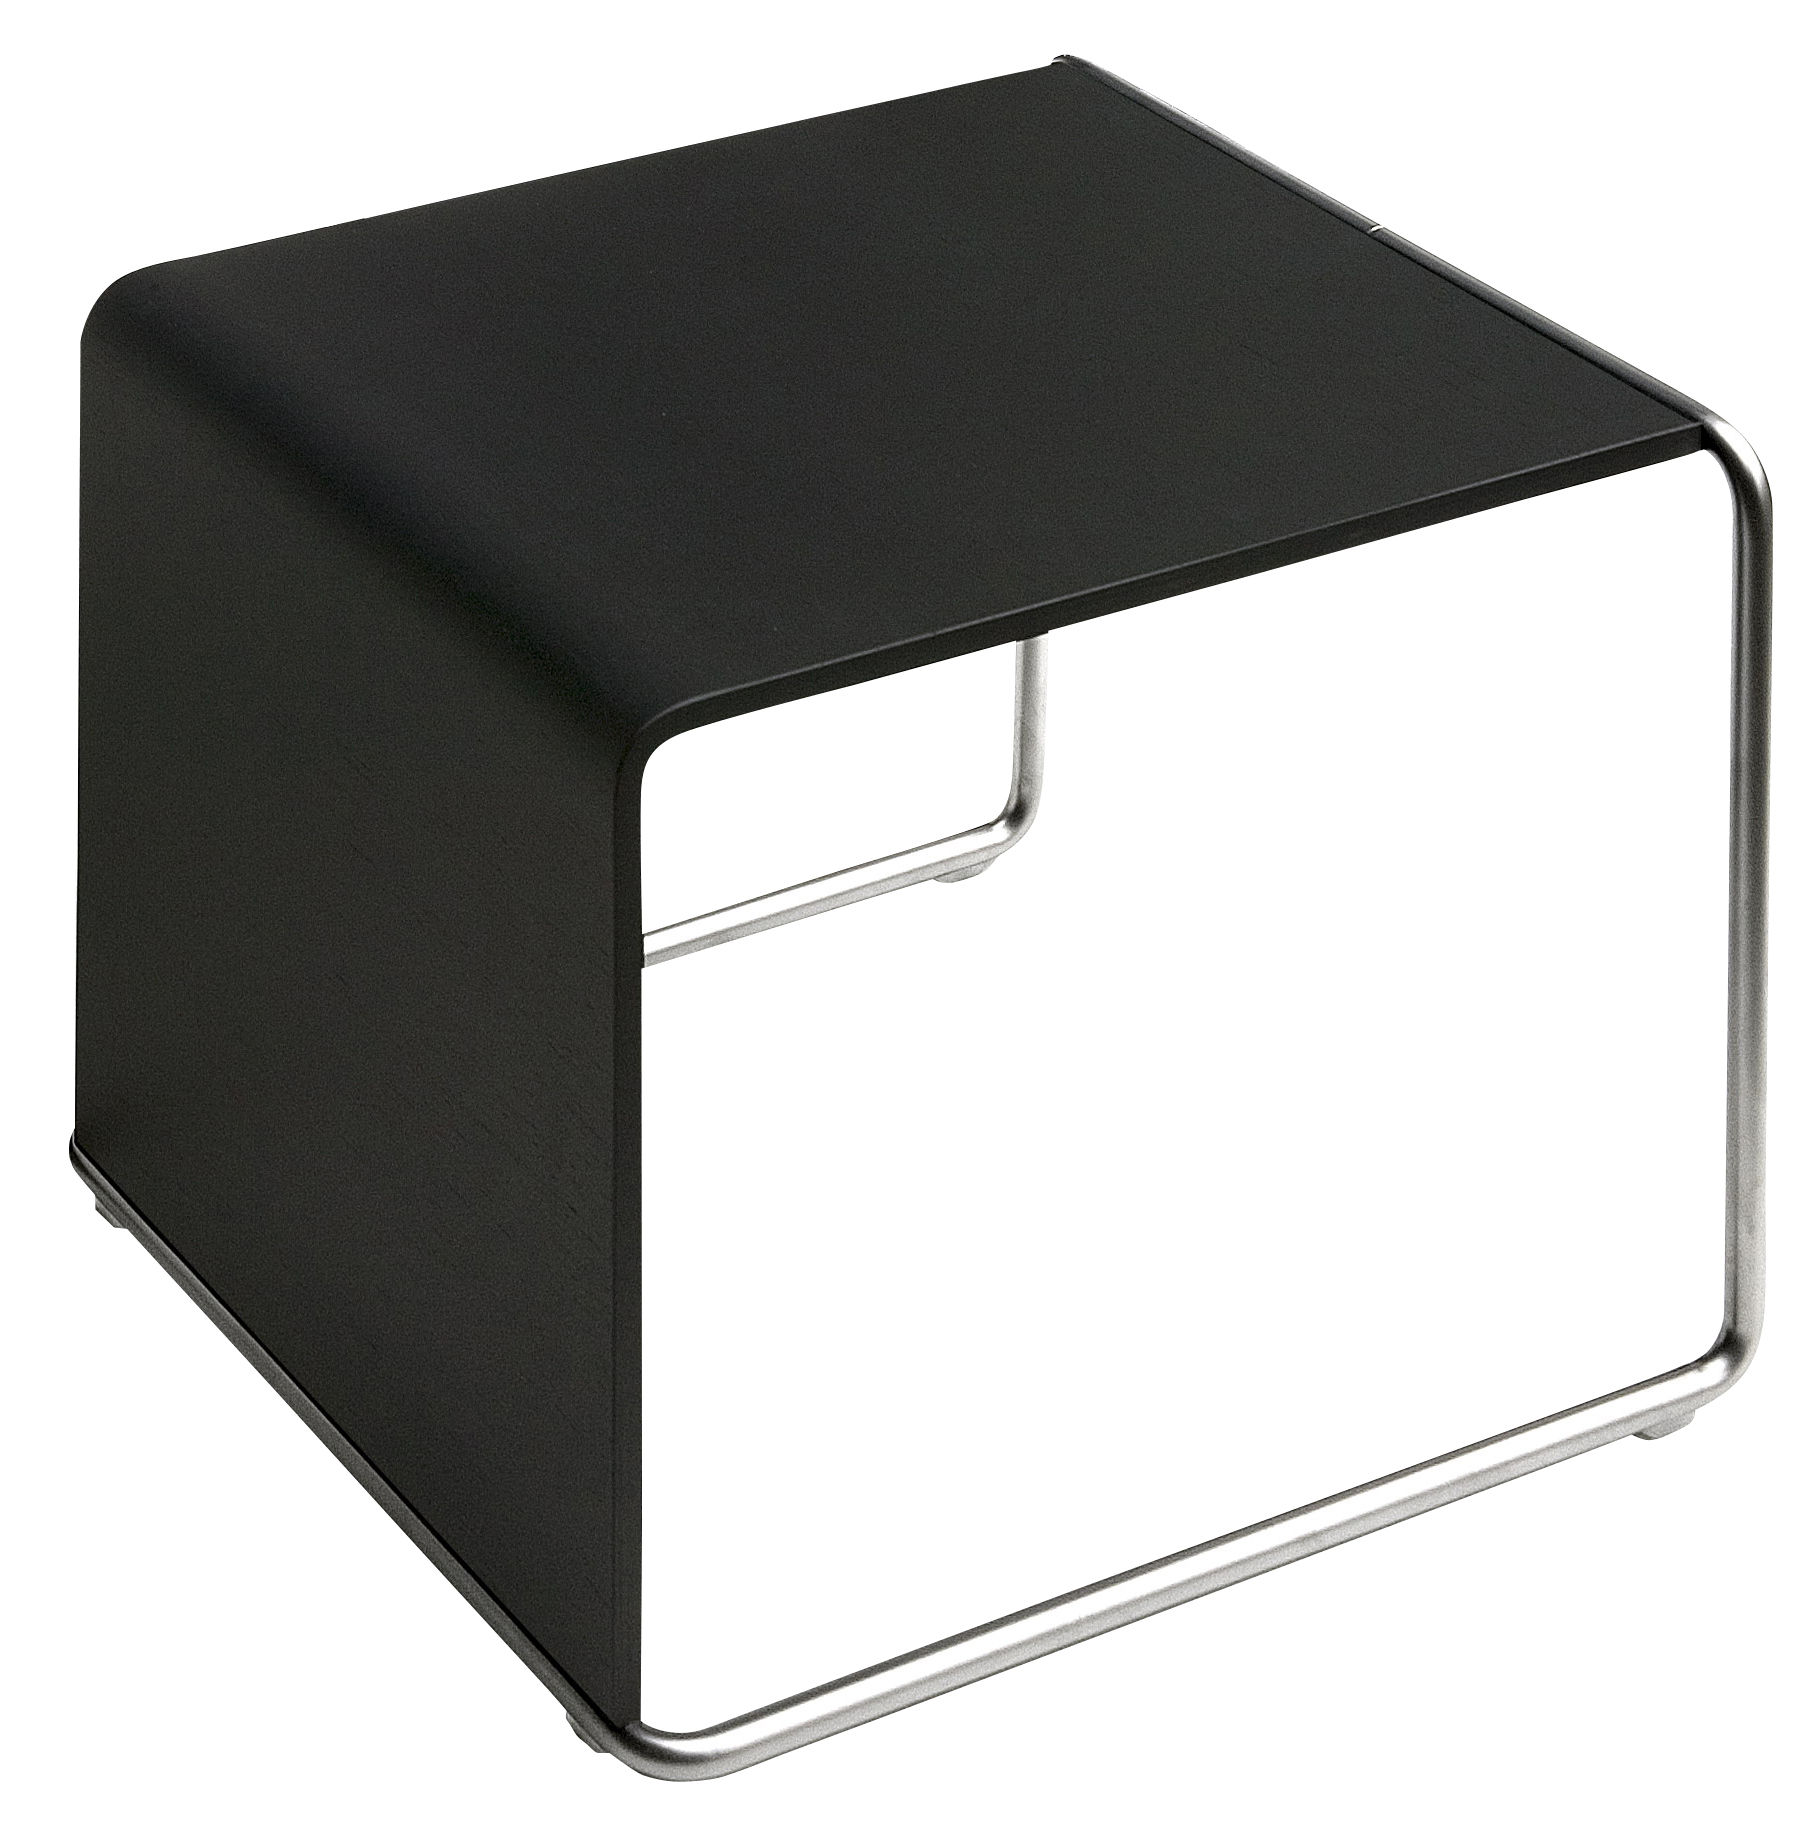 Furniture - Coffee Tables - Ueno End table by Lapalma - Laquered black - Oak, Sandy stainless steel